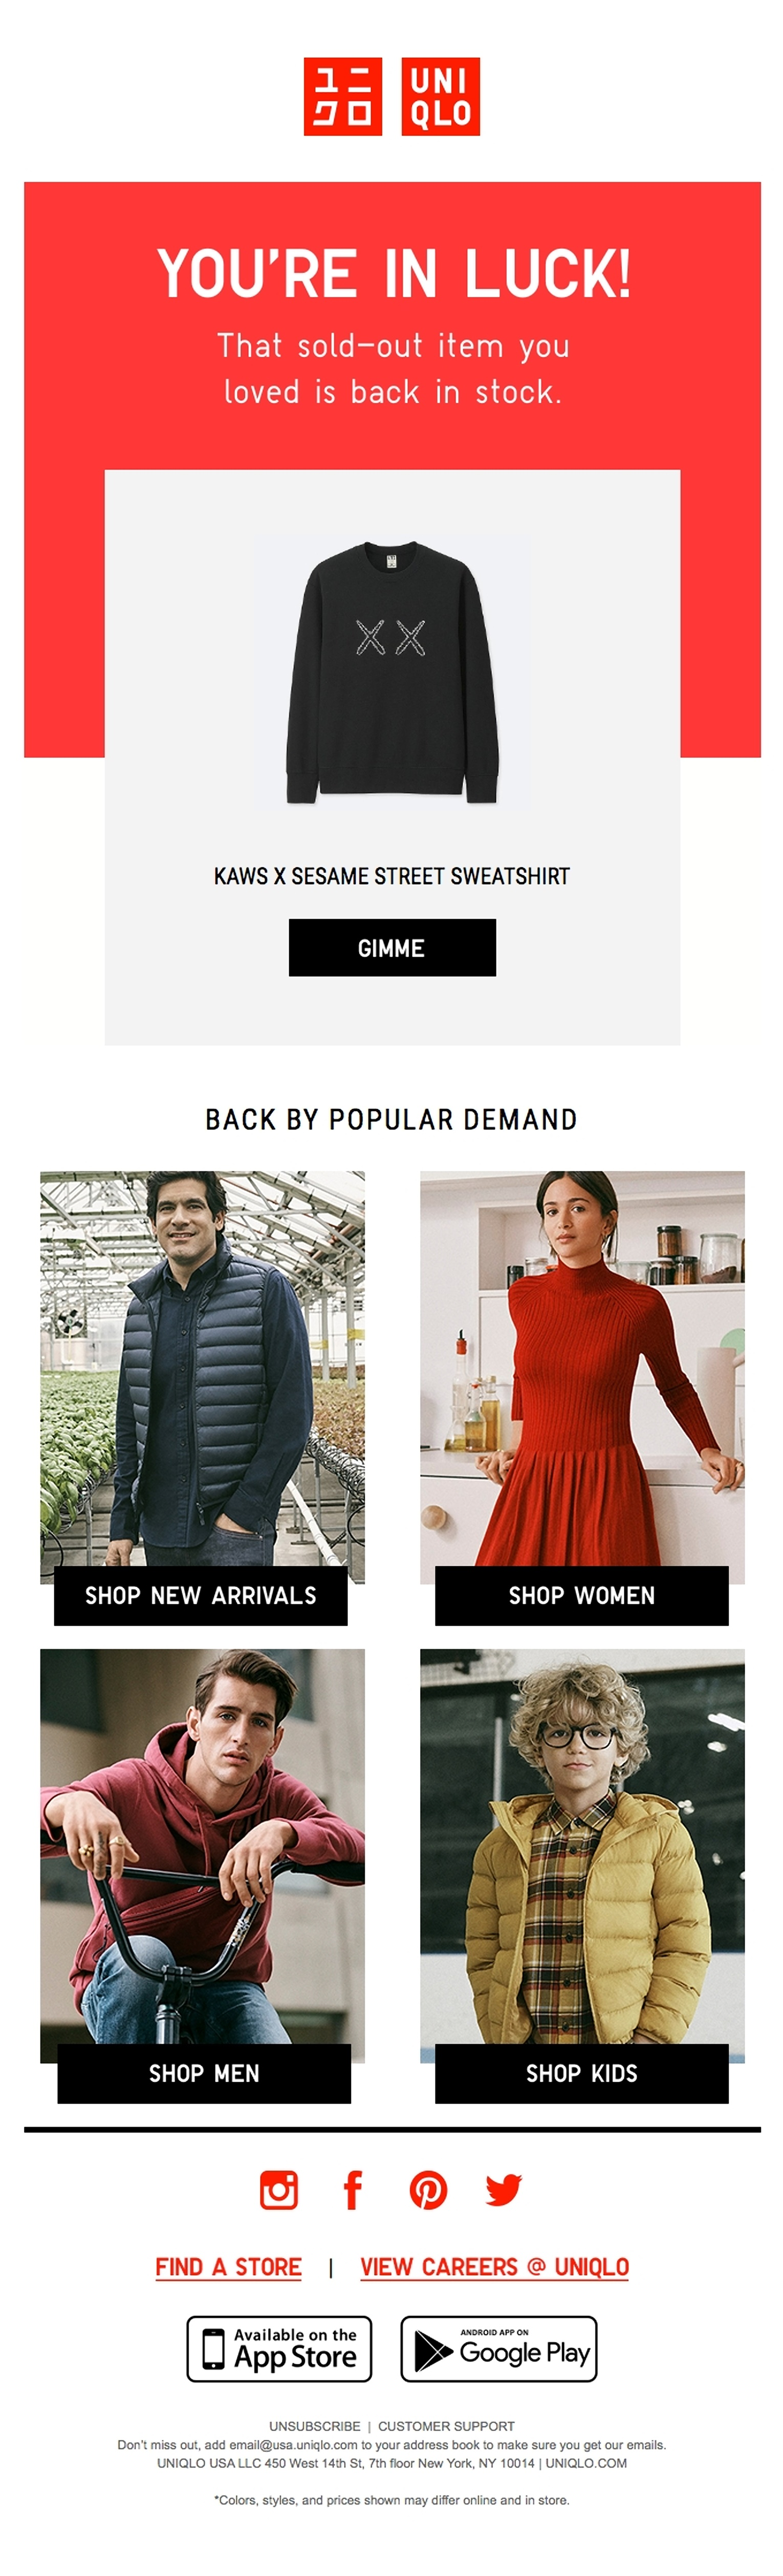 Uniqlo email showing an example of a retail message